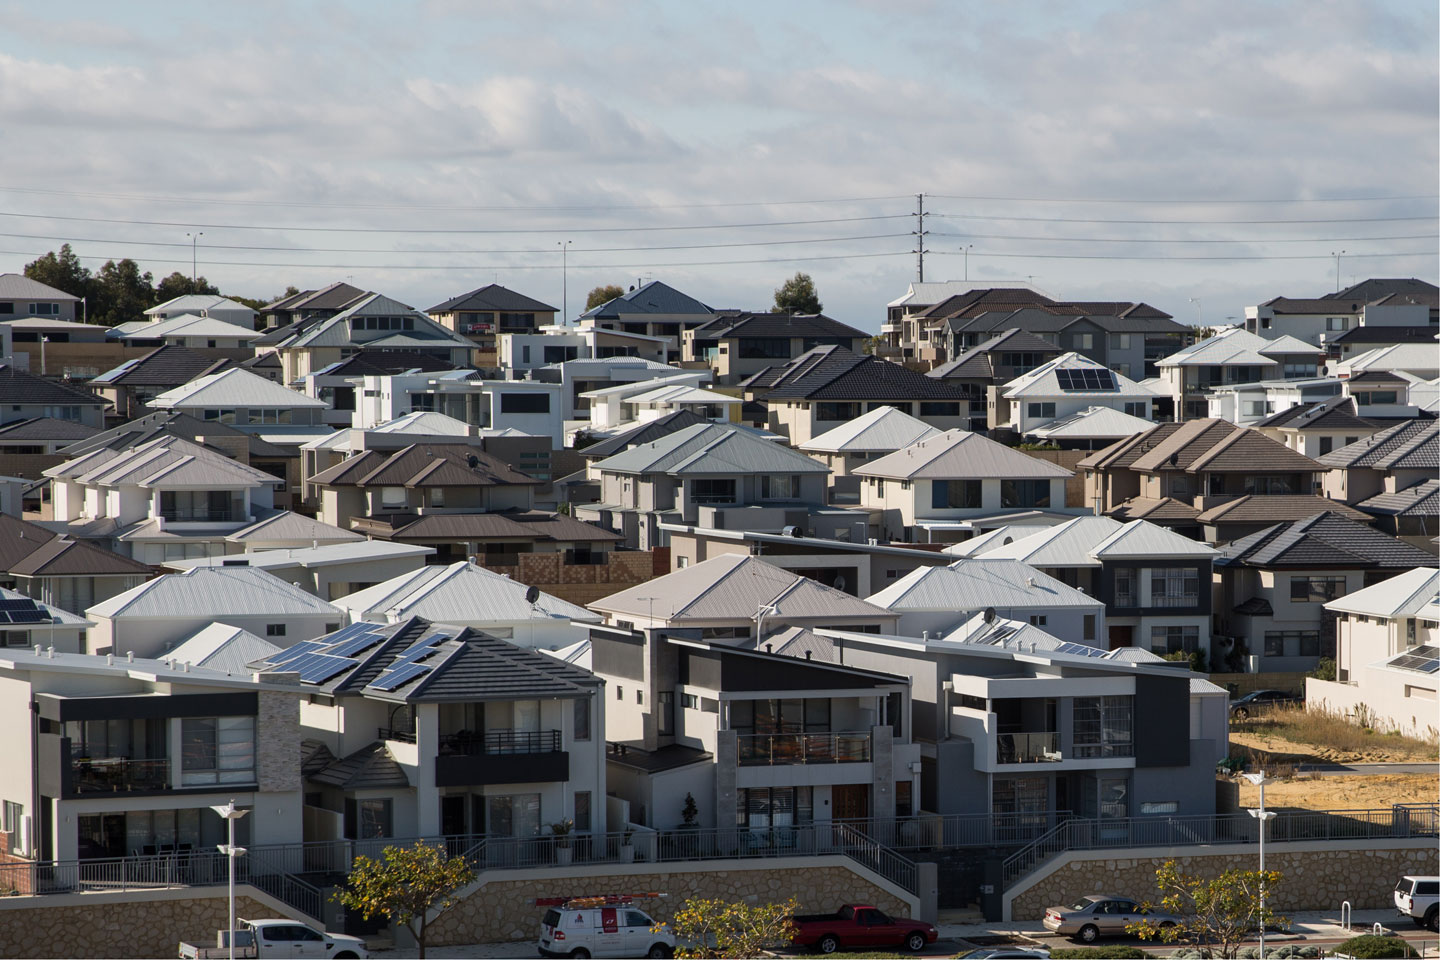 Wa Building Largest Homes Nationally Business News